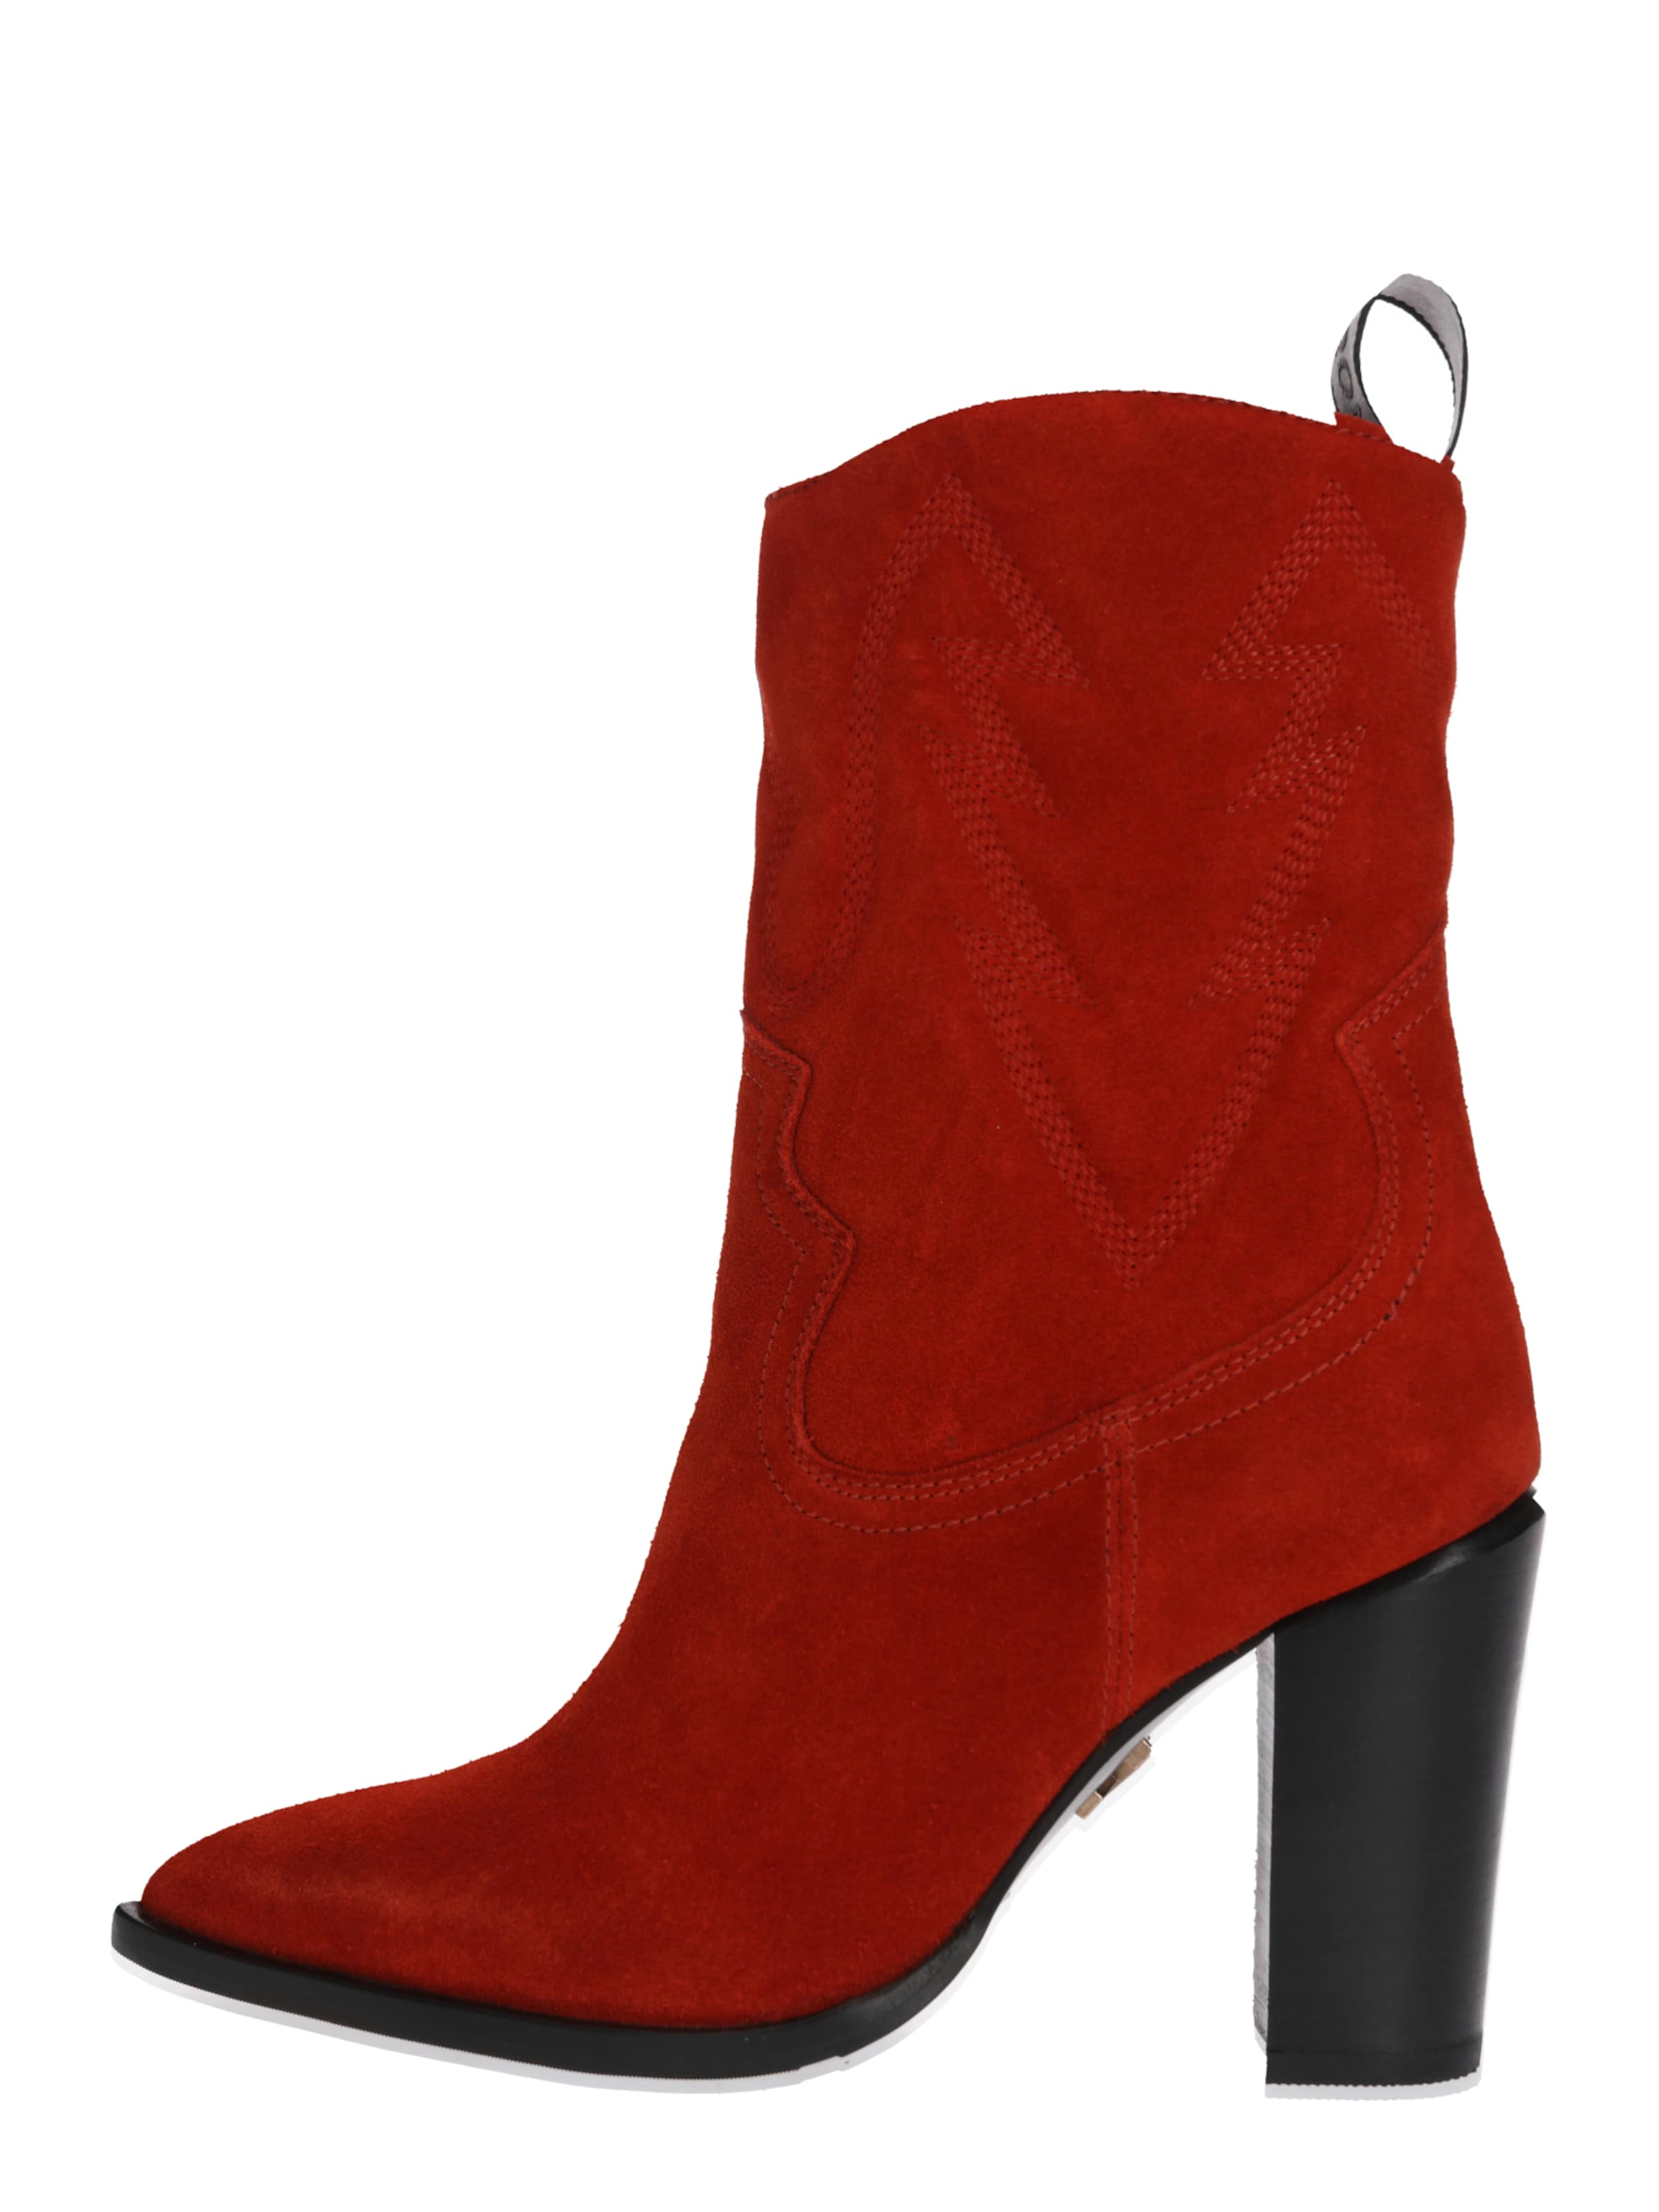 En Bronx Rouge Americana' Rouille Bottines 'new dBoexWrC